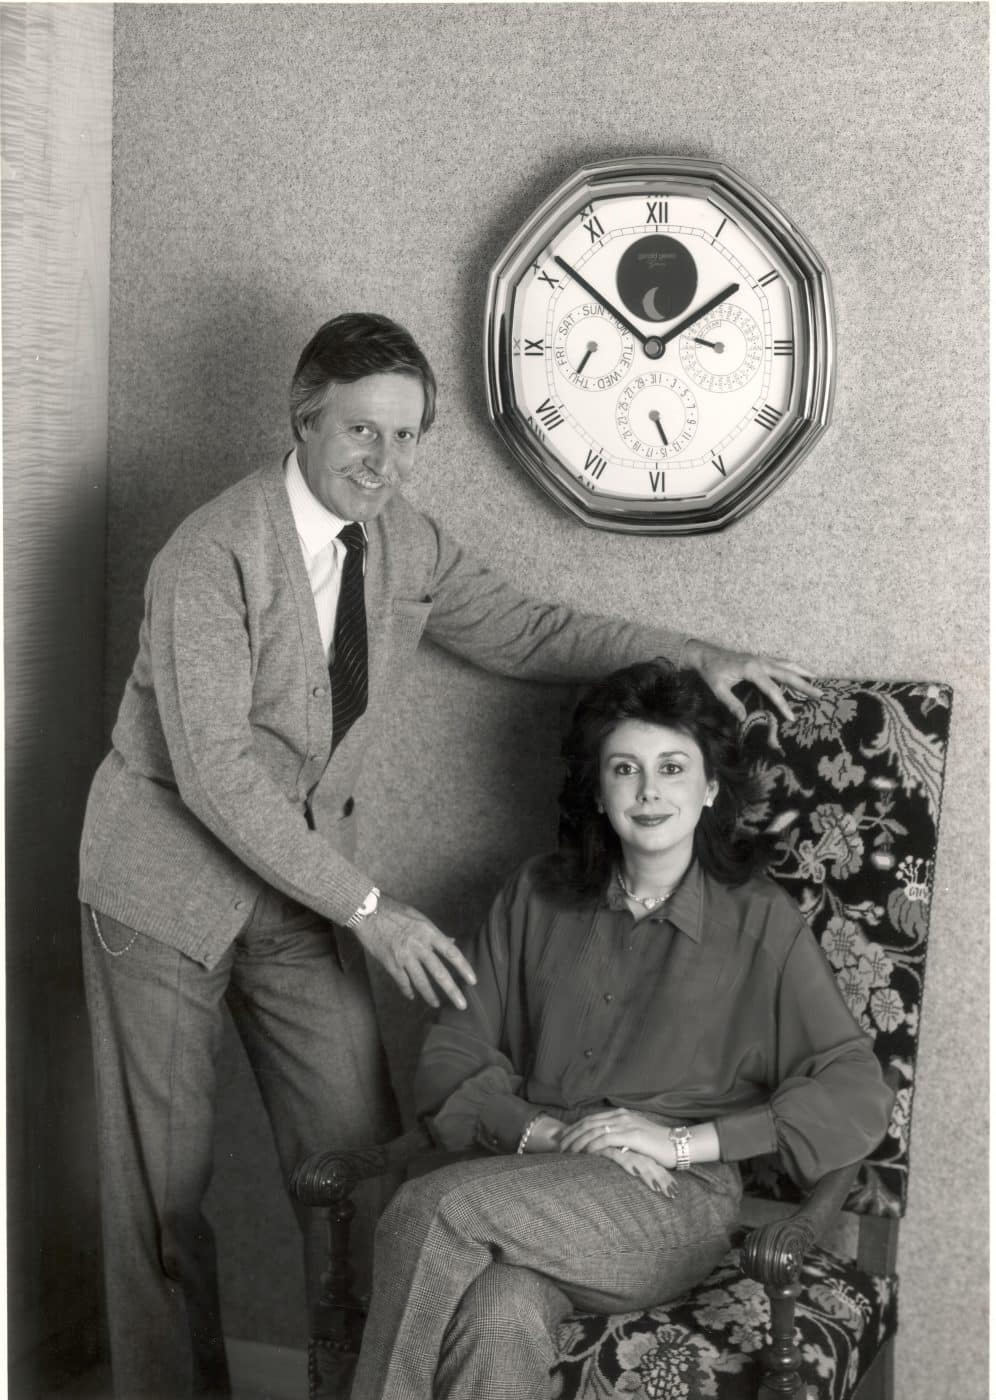 Watchmaker Gérald Genta, with his wife and business partner, Evelyne, posing beneath a clock of his own design